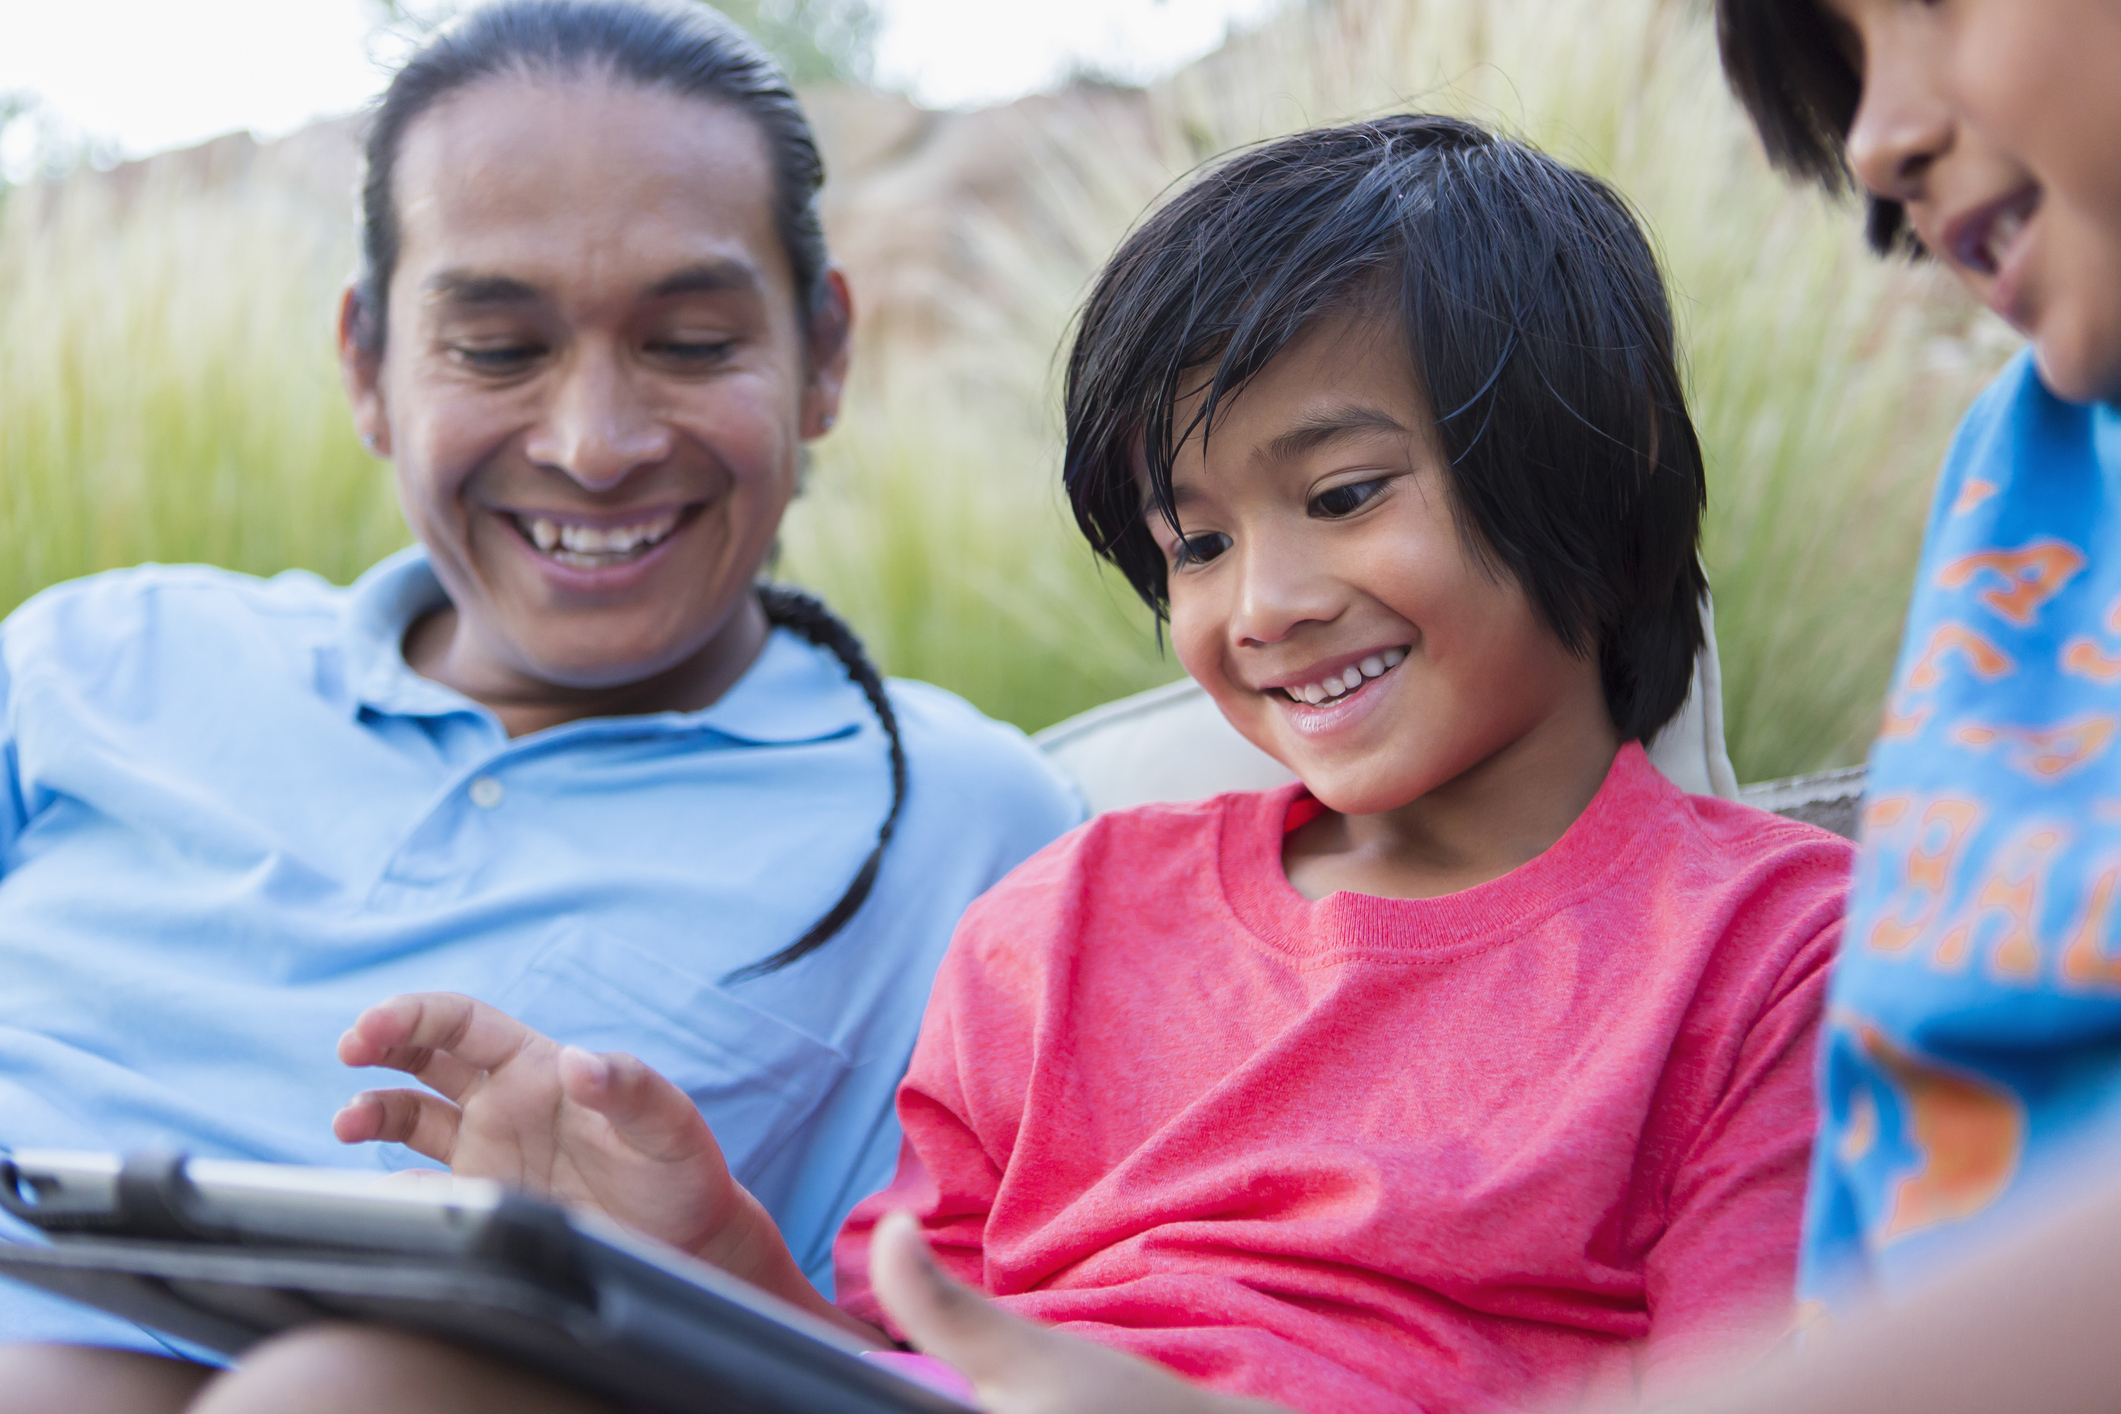 Family using digital tablet outdoors